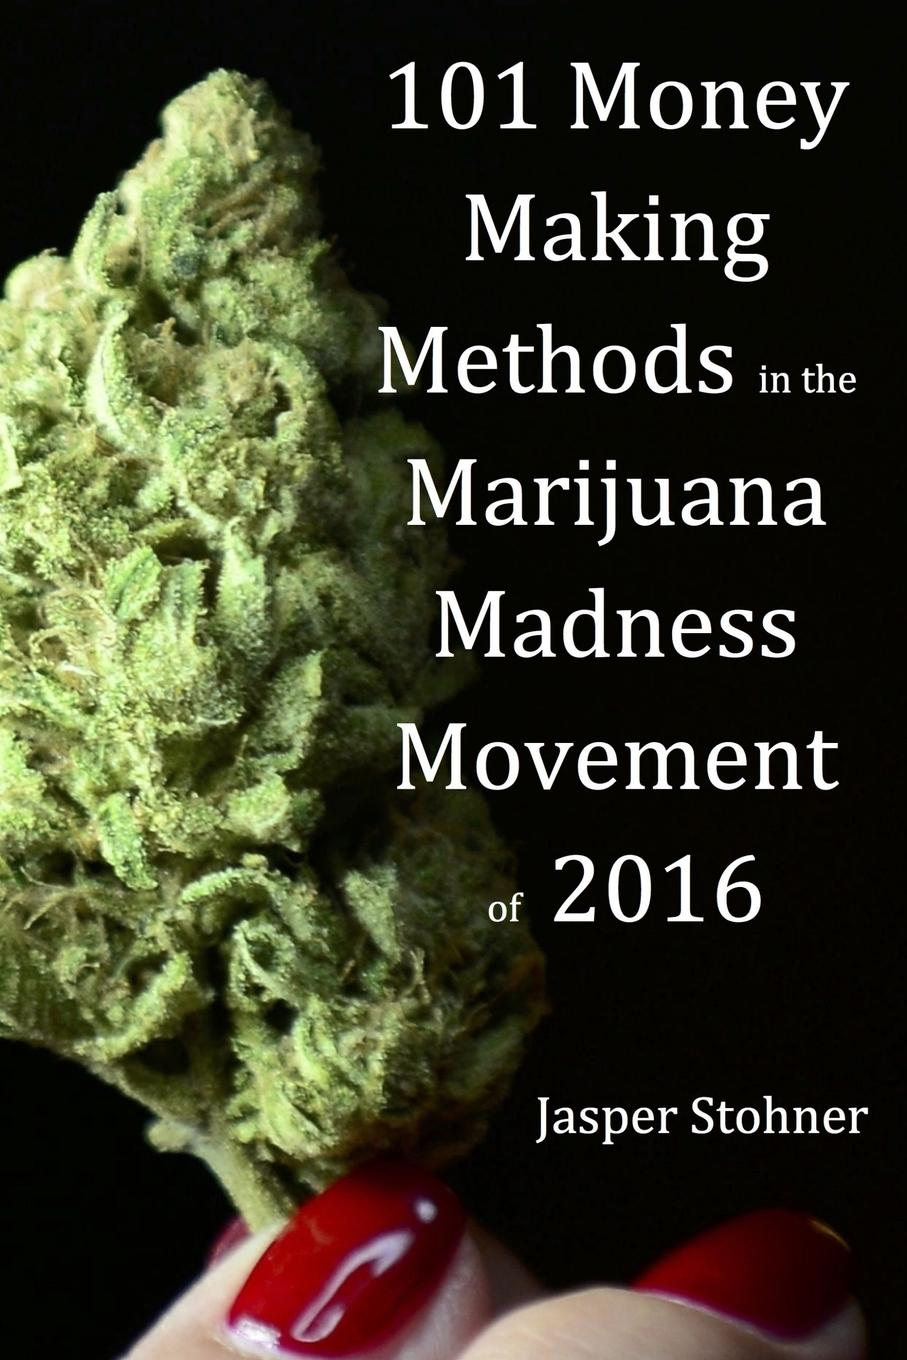 101 Money Making Methods in the Marijuana Madness Movement of 2016 101 Money Making Methods in the Marijuana Madness Movement 2016...